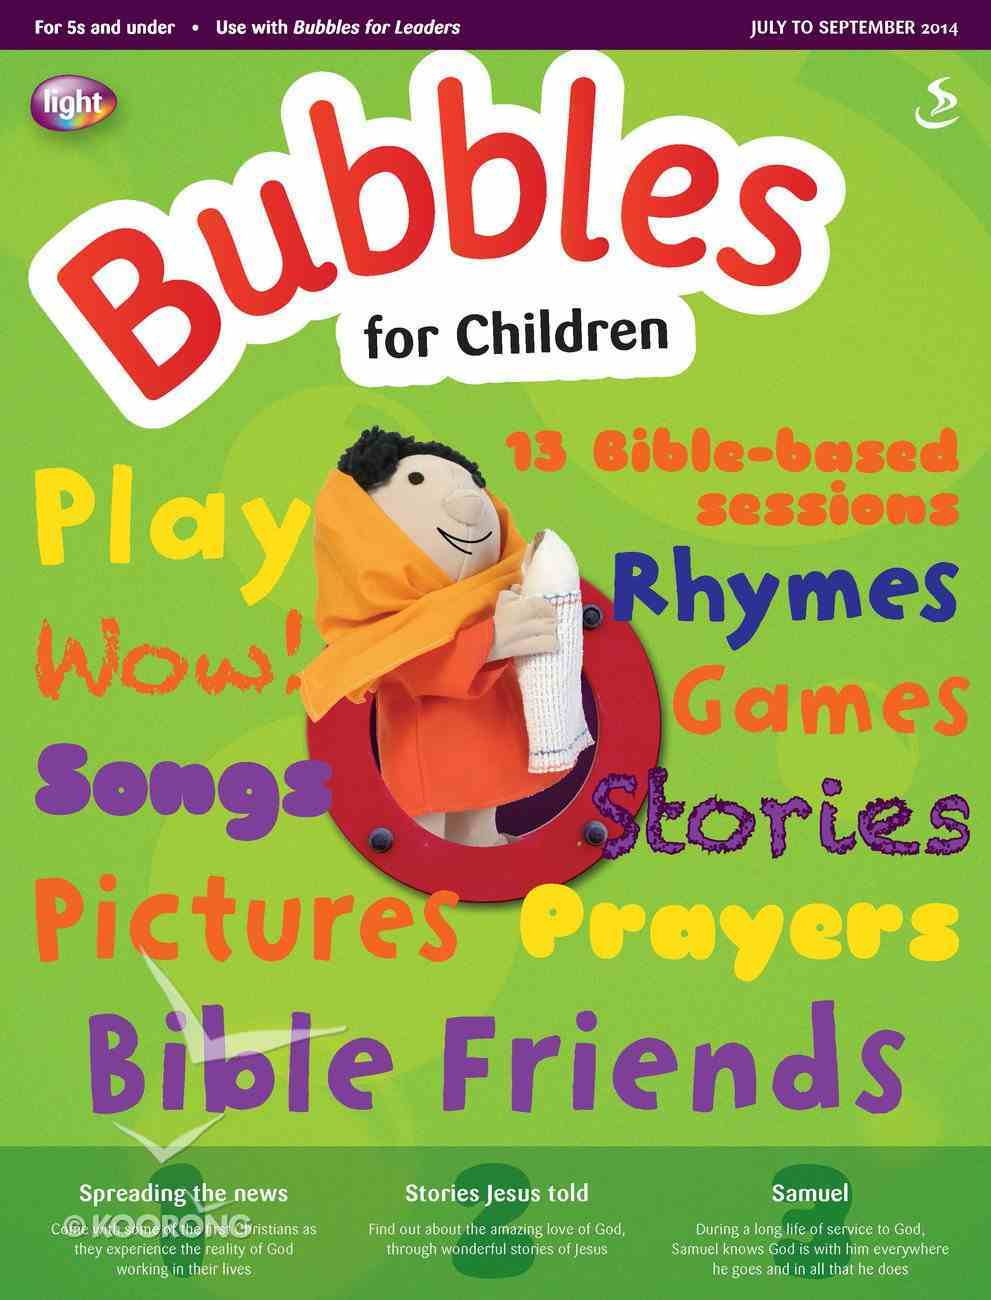 Light: Bubbles 2014 #03: Jul-Sep Student's Guide (5 And Under) Paperback